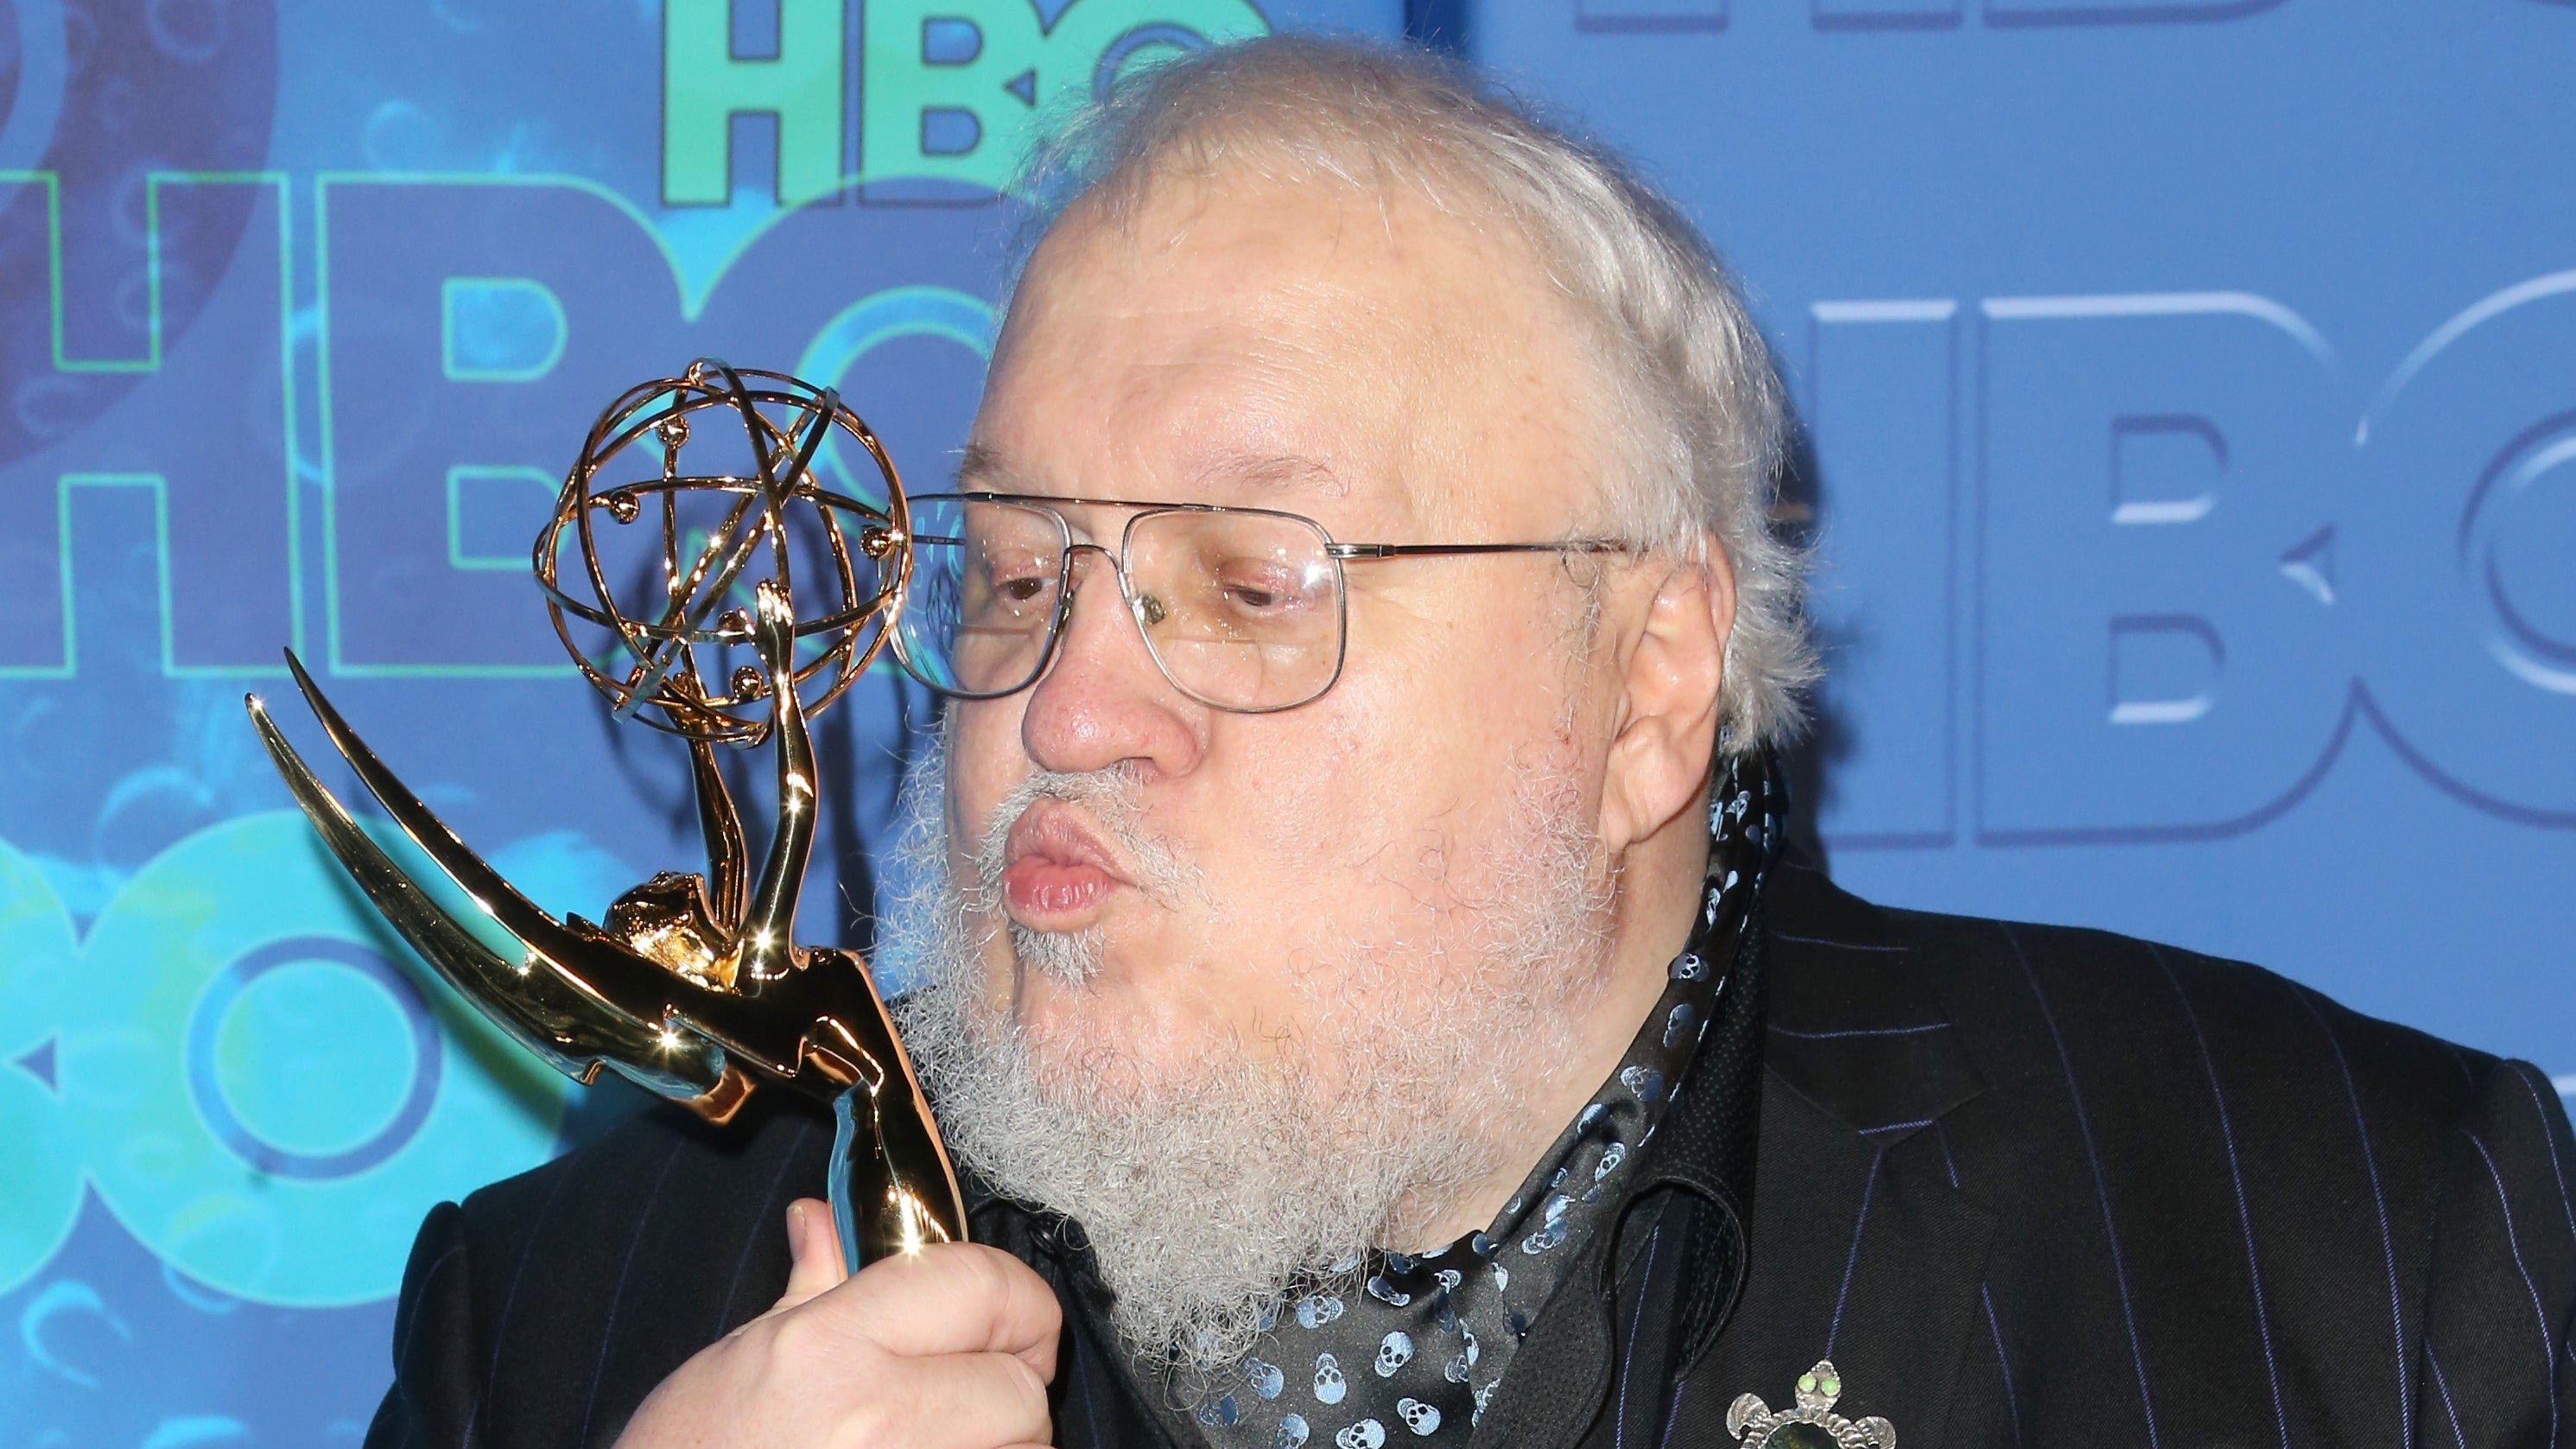 George RR Martin's Working On An Ice Dragon Movie That Has Nothing To Do With Game Of Thrones